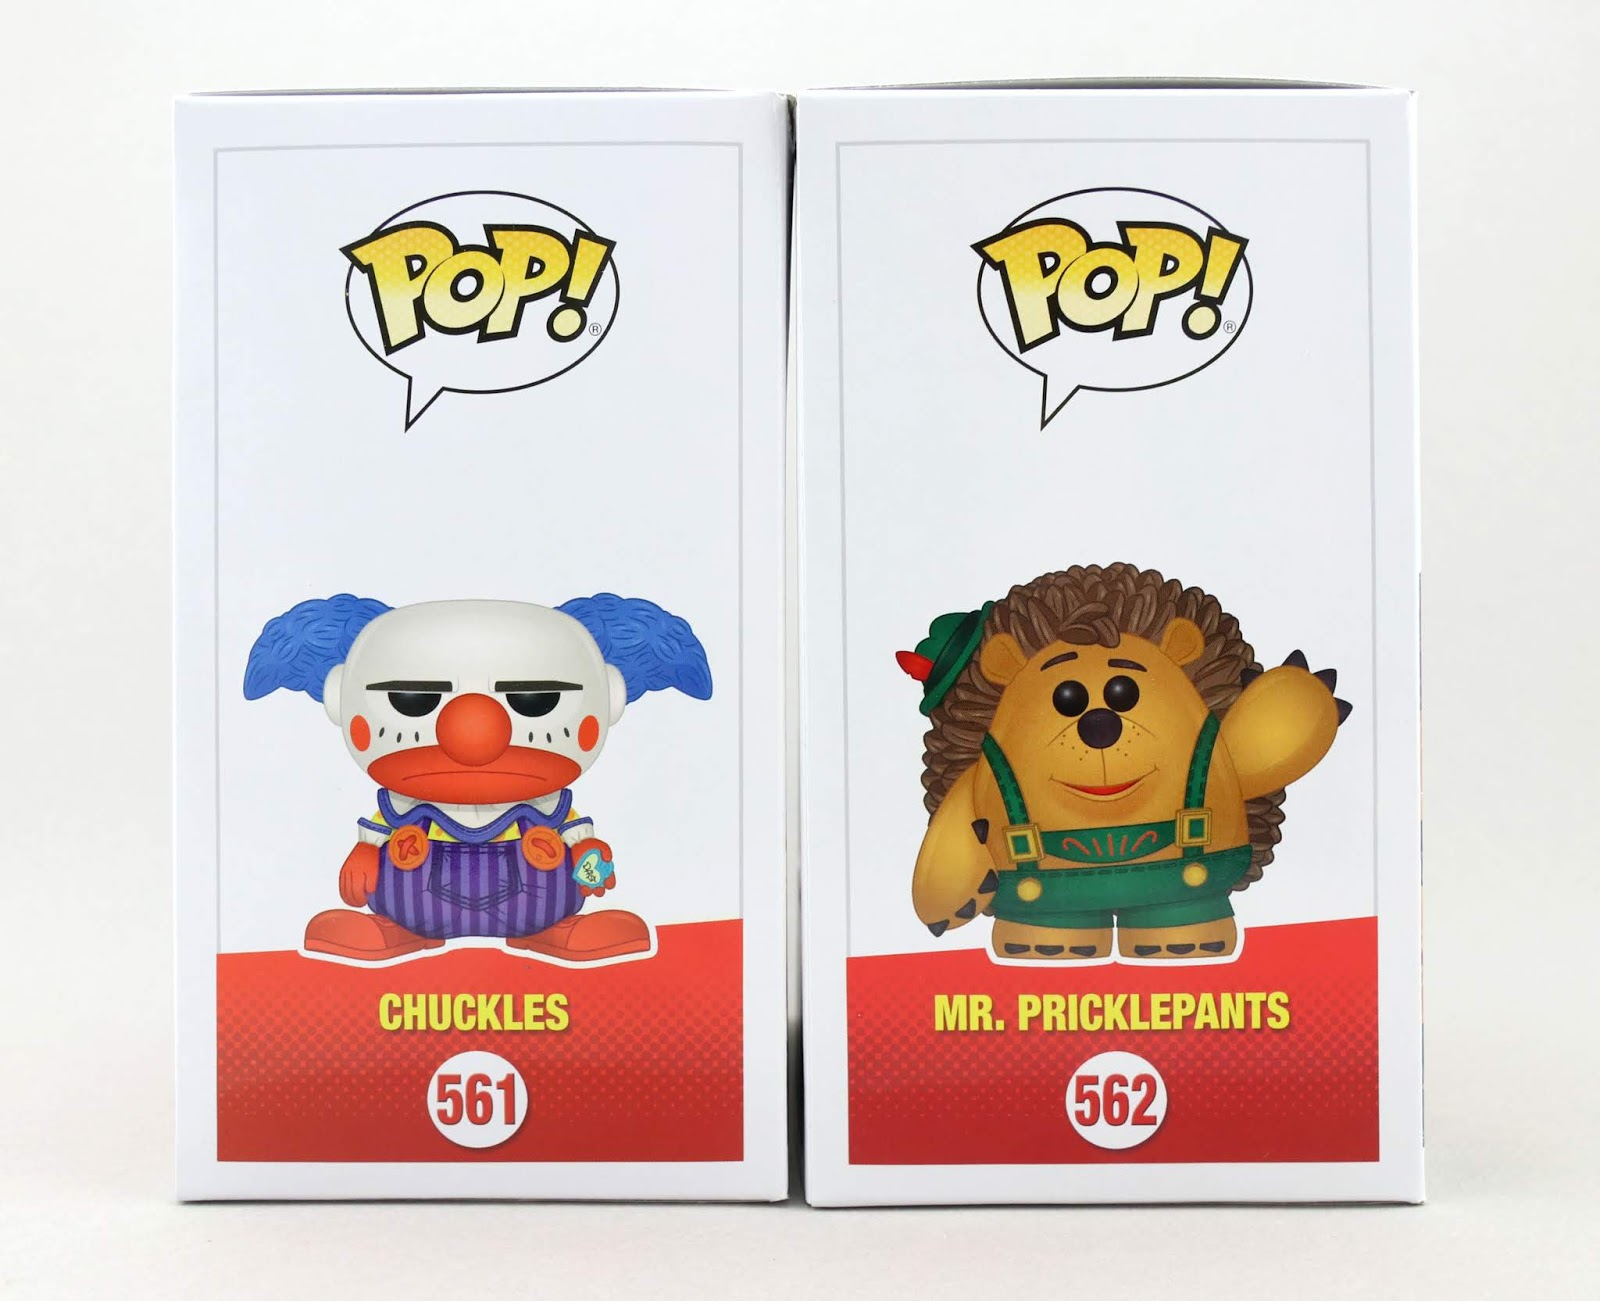 toy story sdcc 2019 convention exclusives